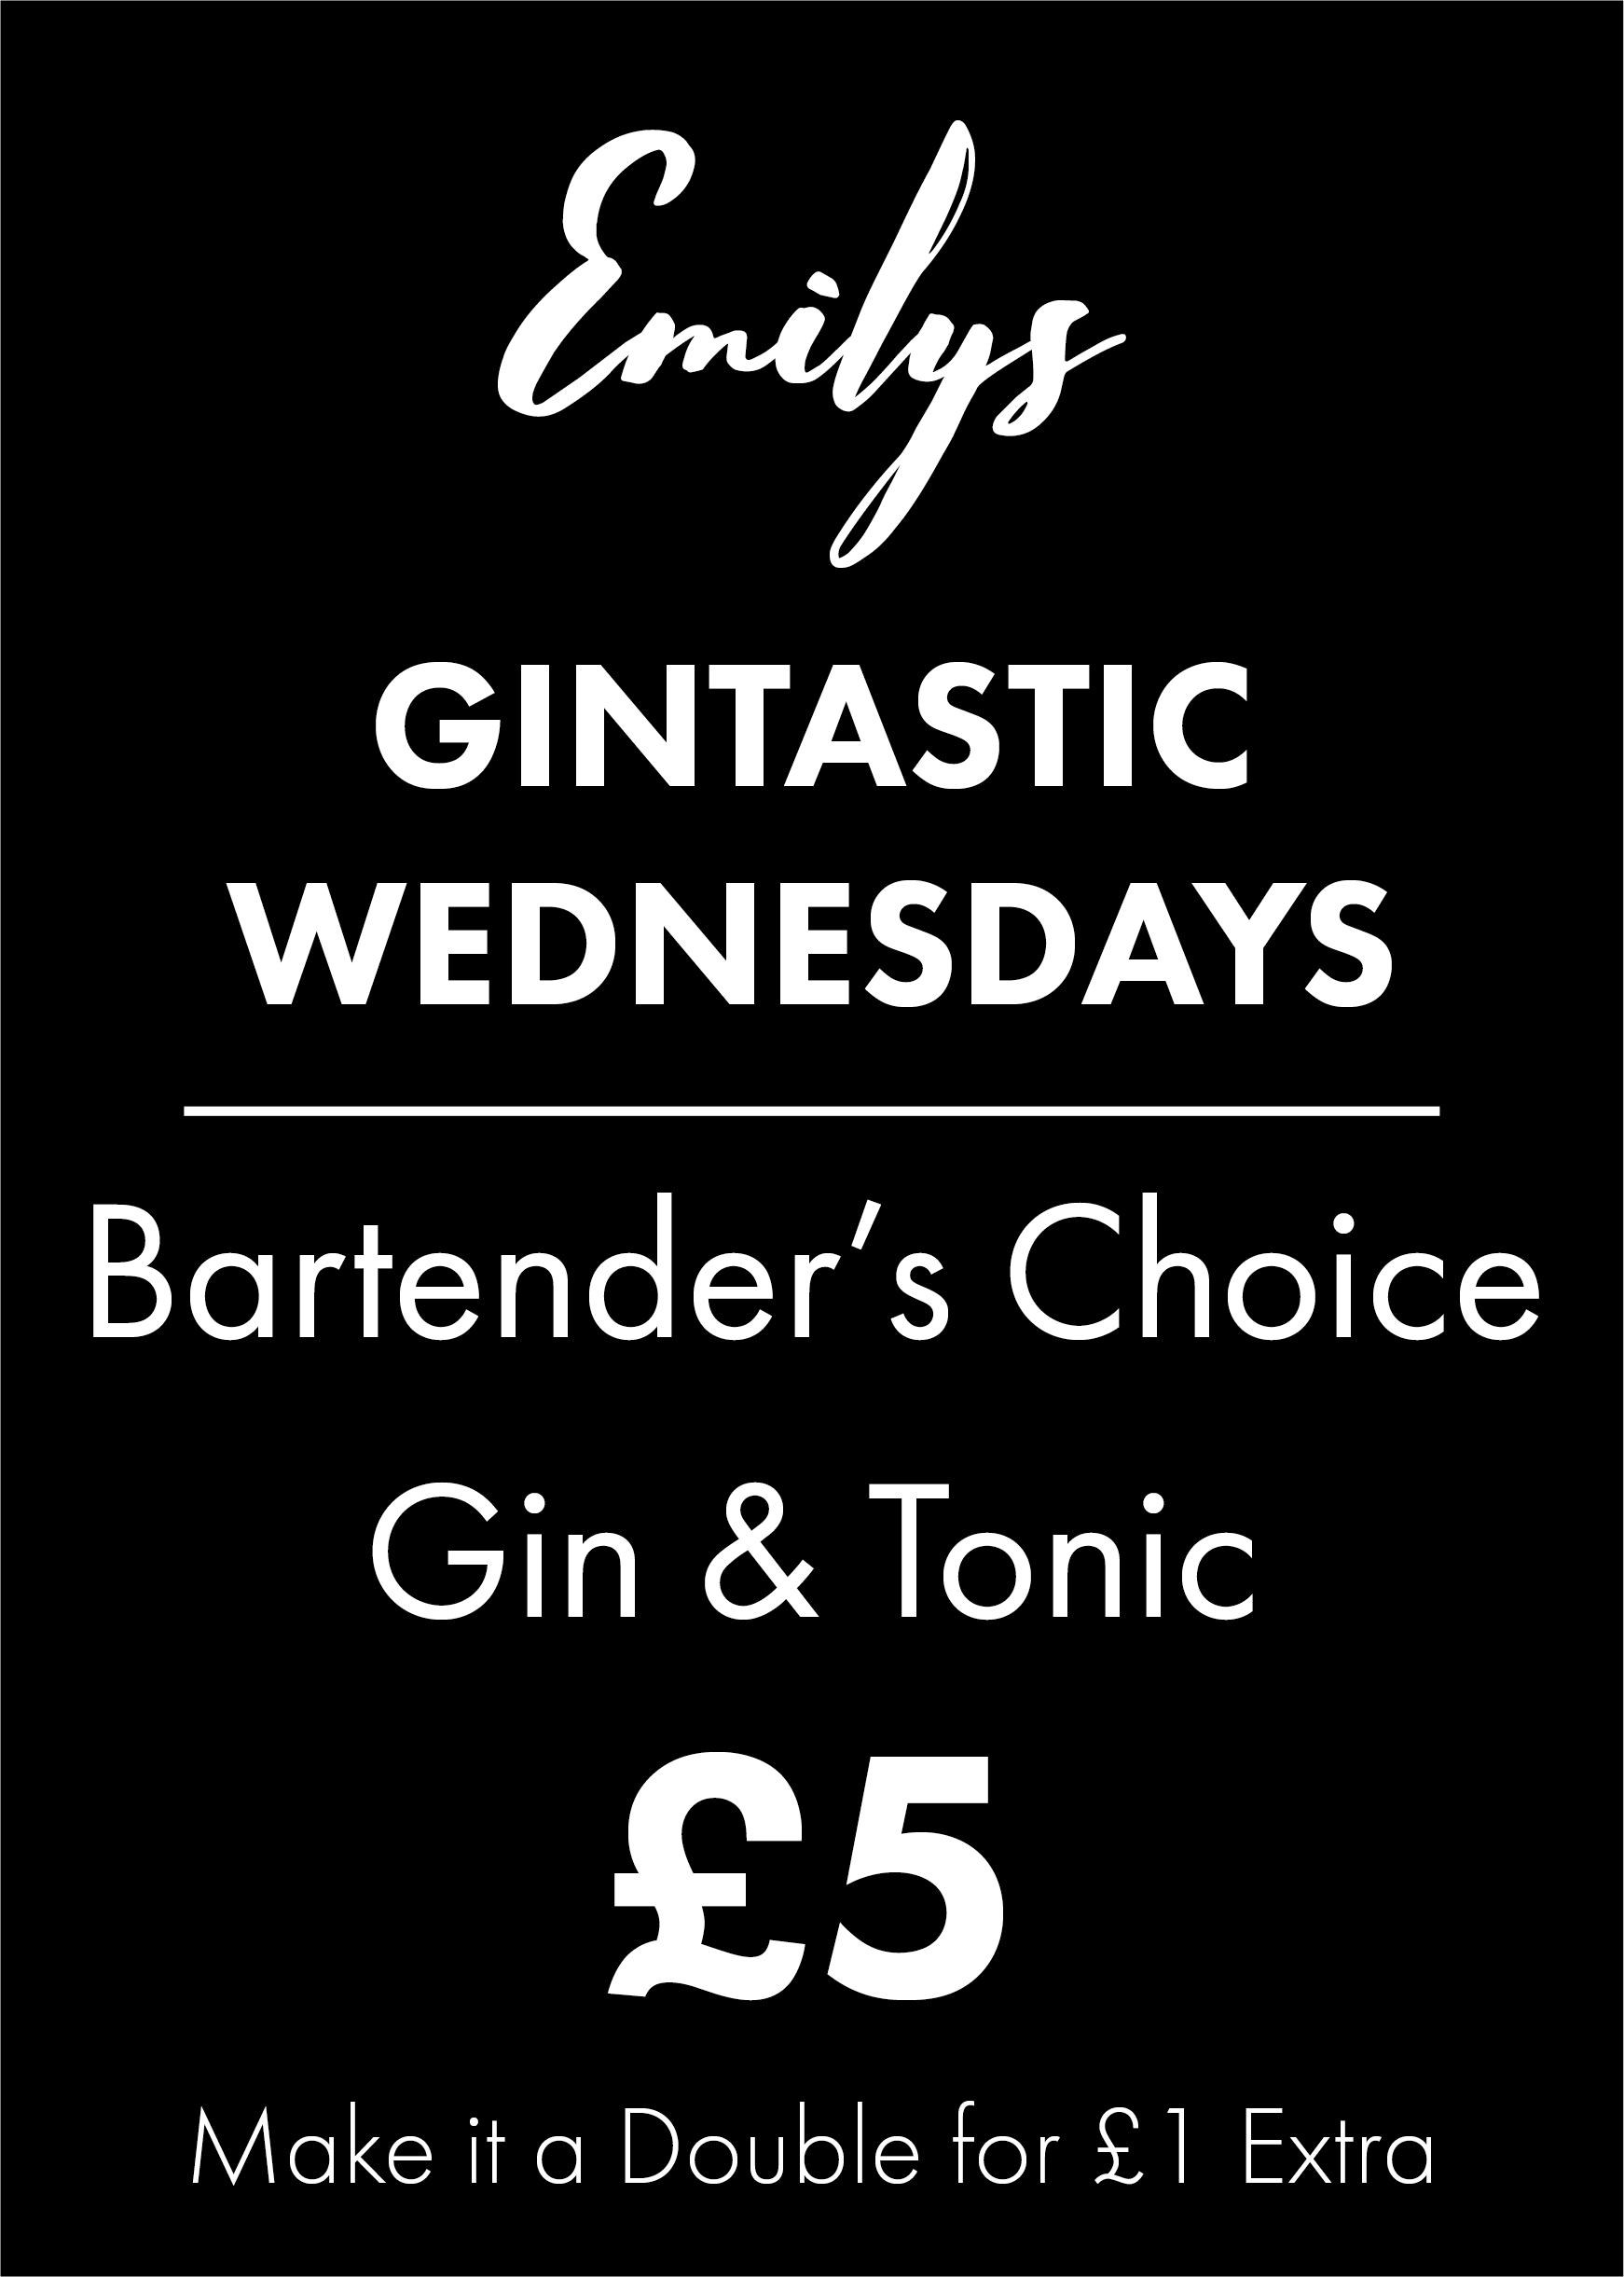 Gintastic Wednesdays